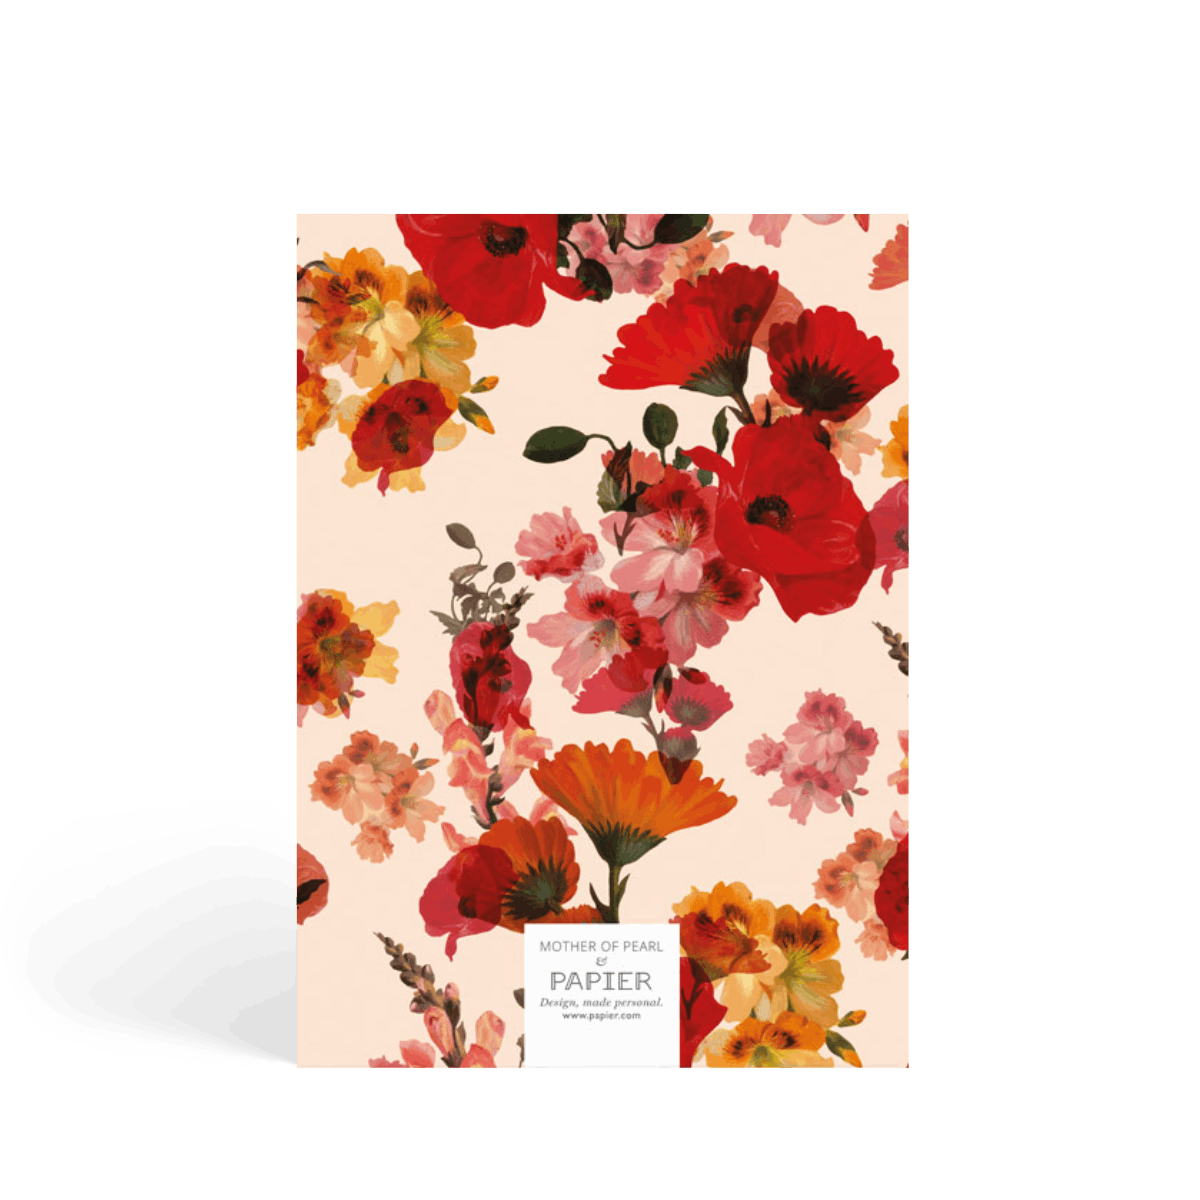 Https%3a%2f%2fwww.papier.com%2fproduct image%2f55504%2f5%2fcordelia floral 13332 back 1542299527.png?ixlib=rb 1.1